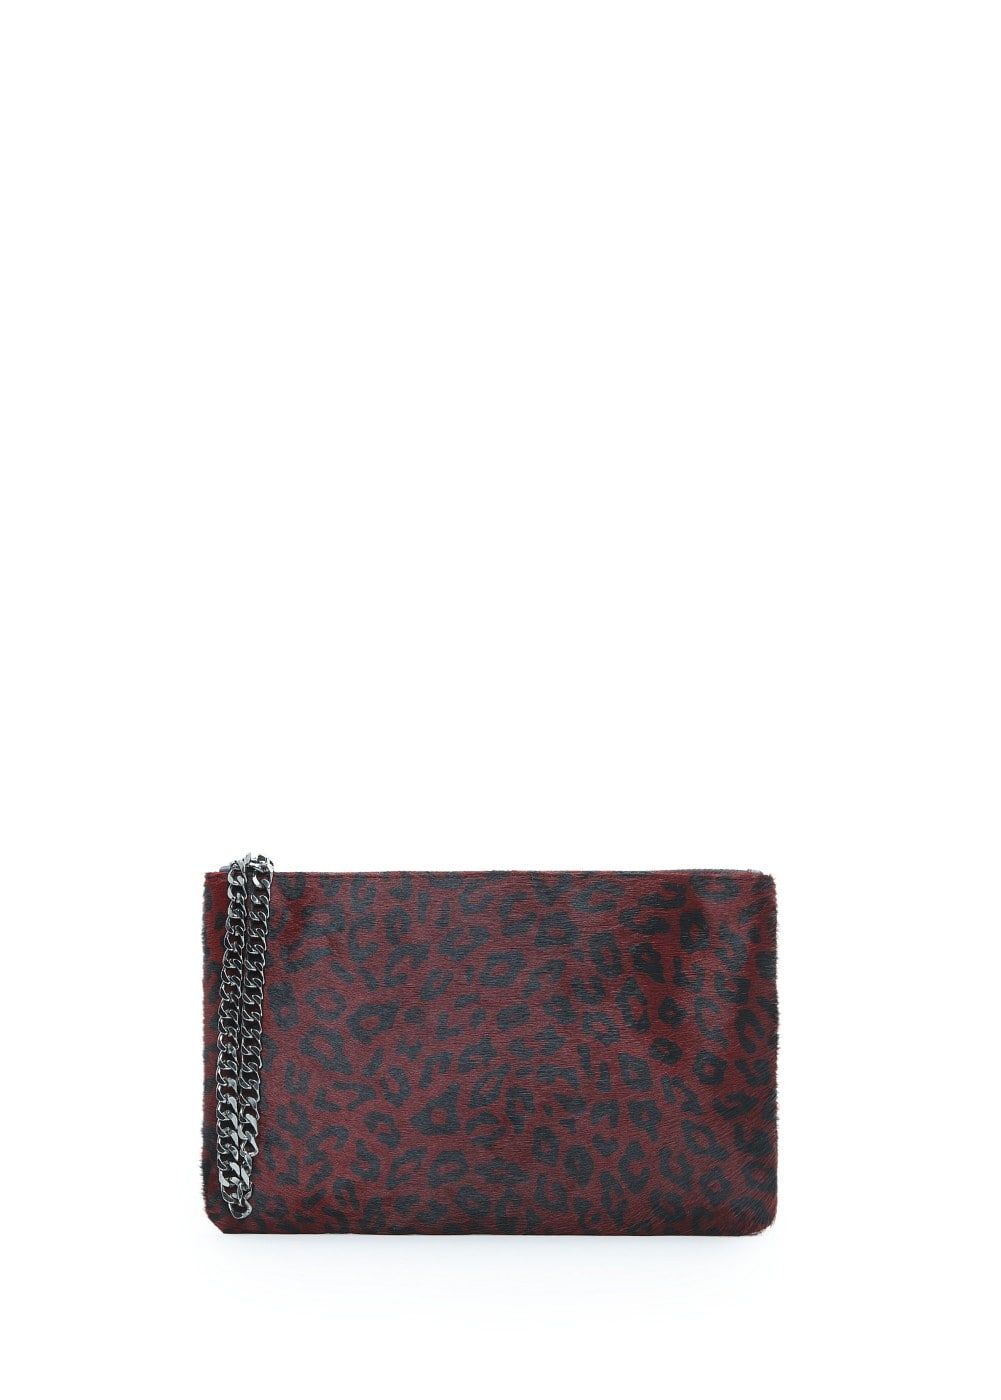 Faux fur appliqué leather clutch